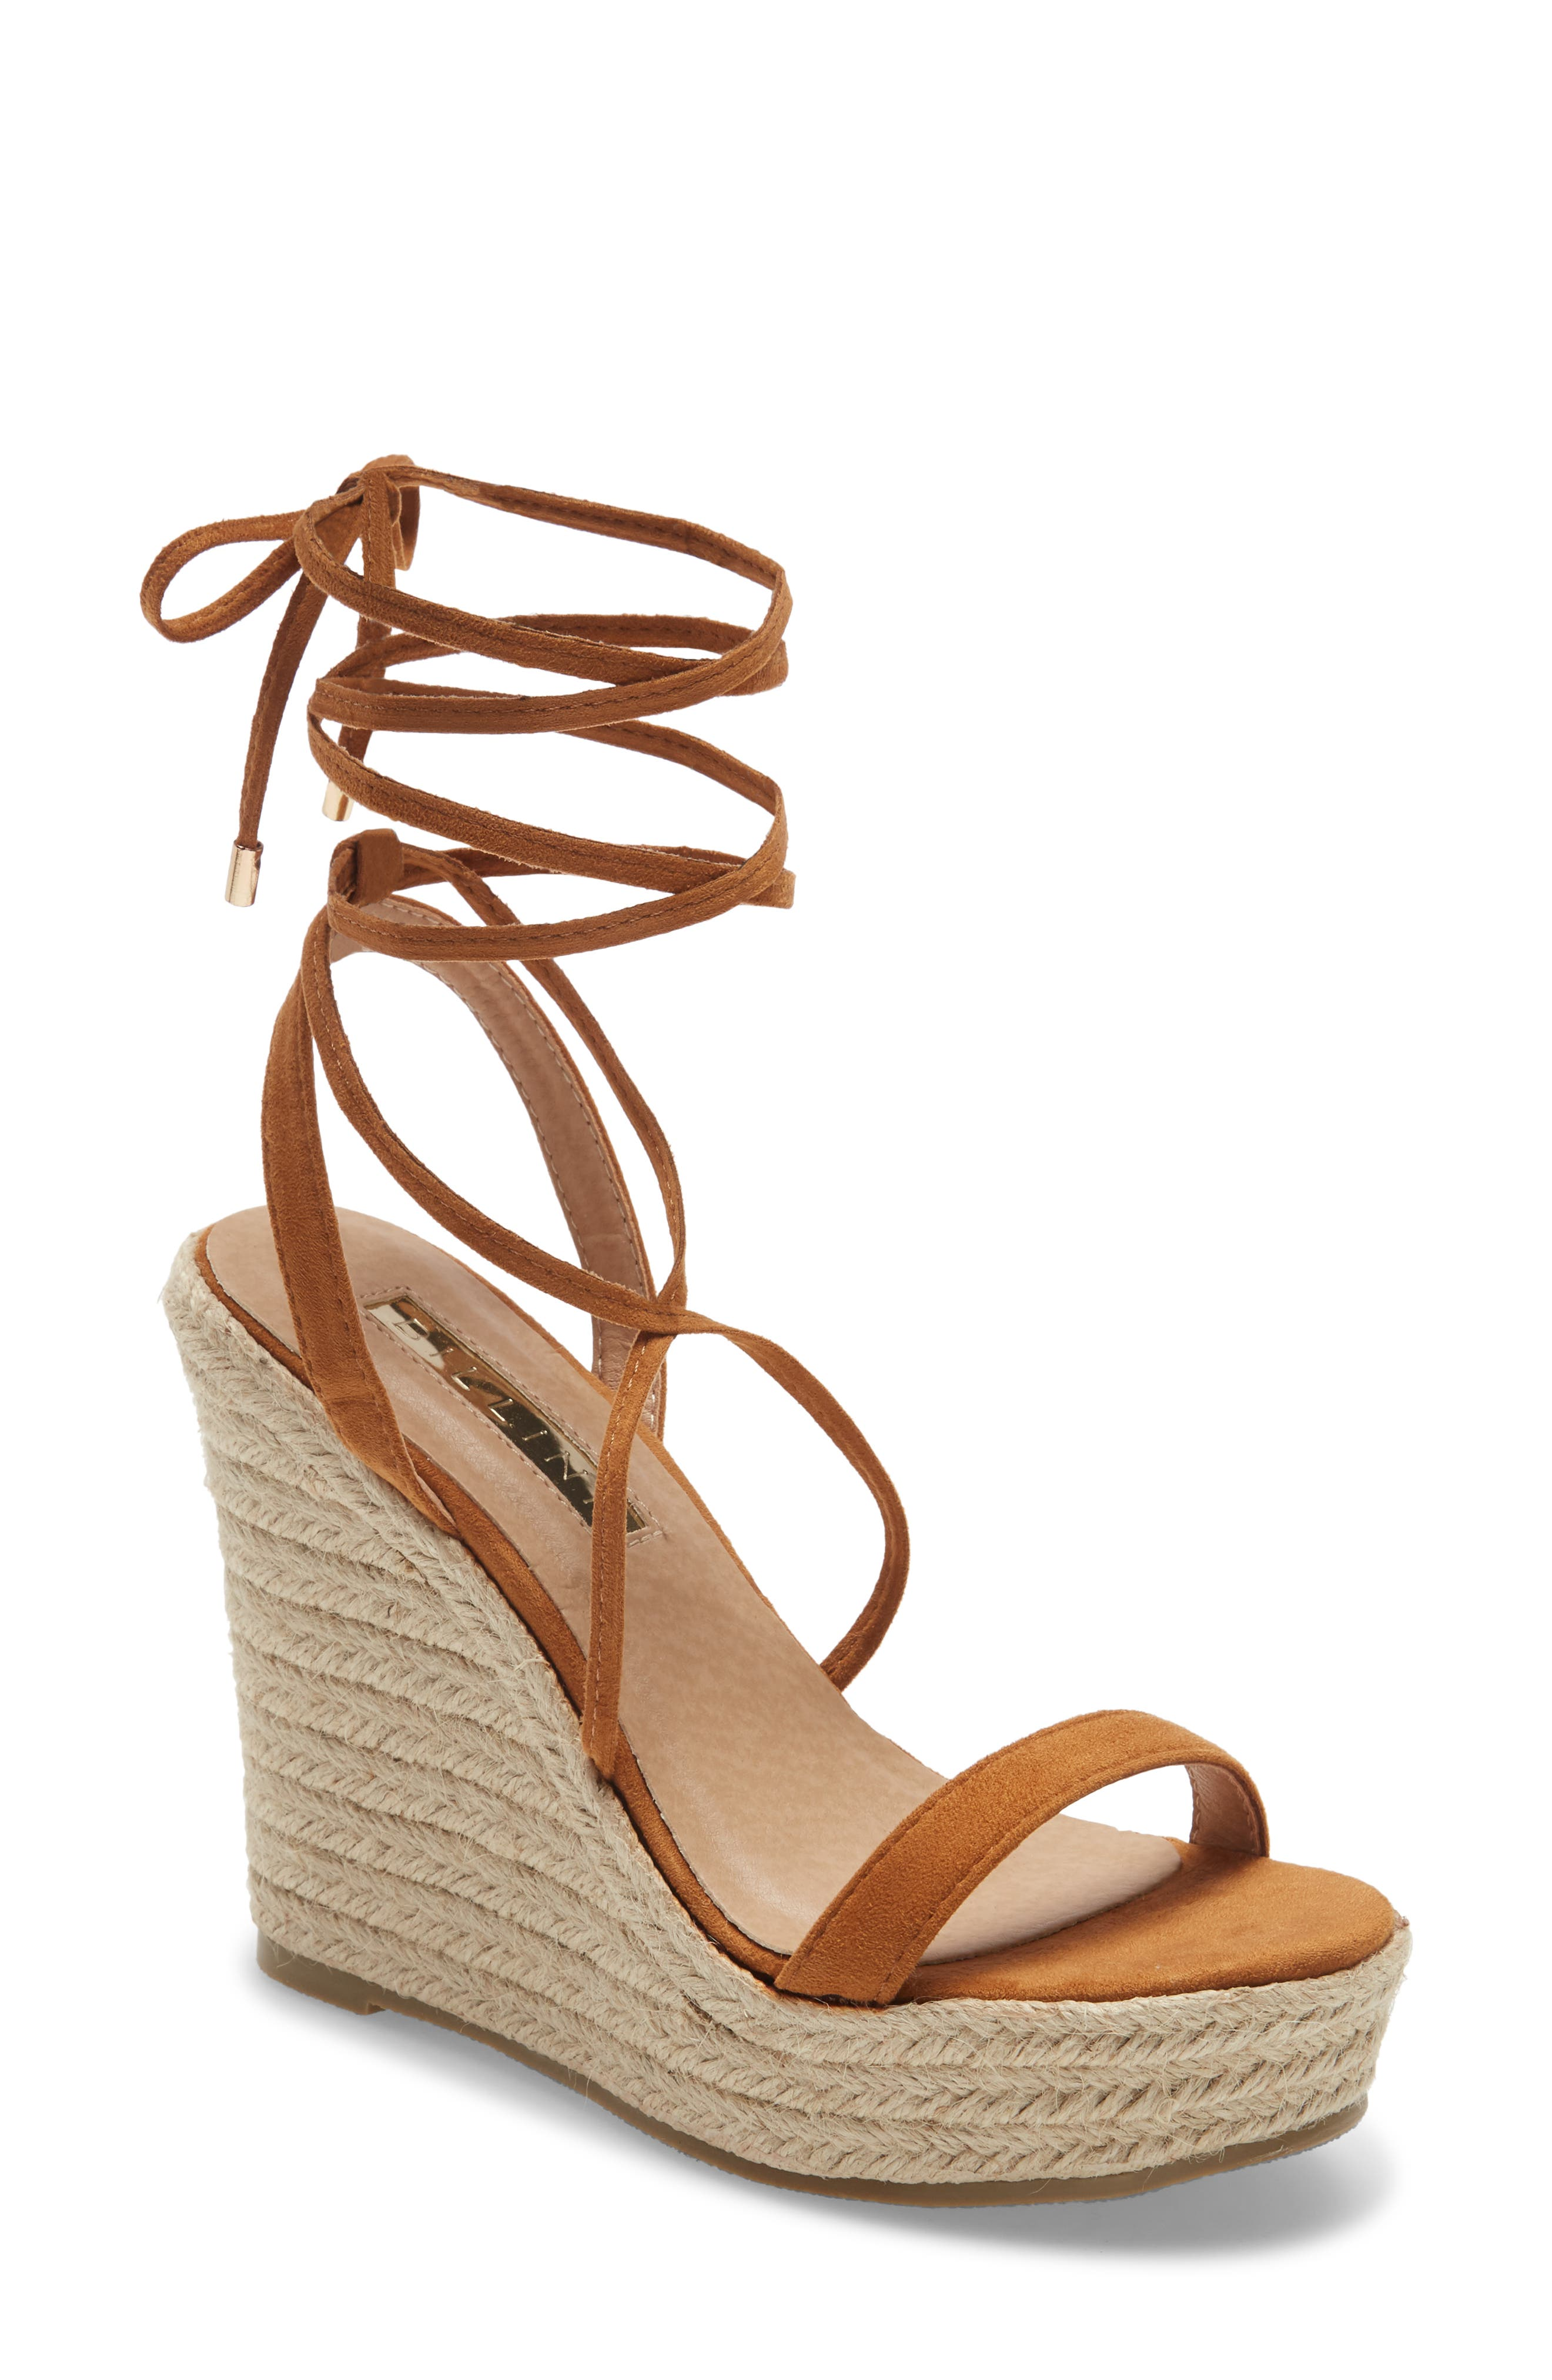 Sloane Strappy Ankle Tie Wedge Sandal